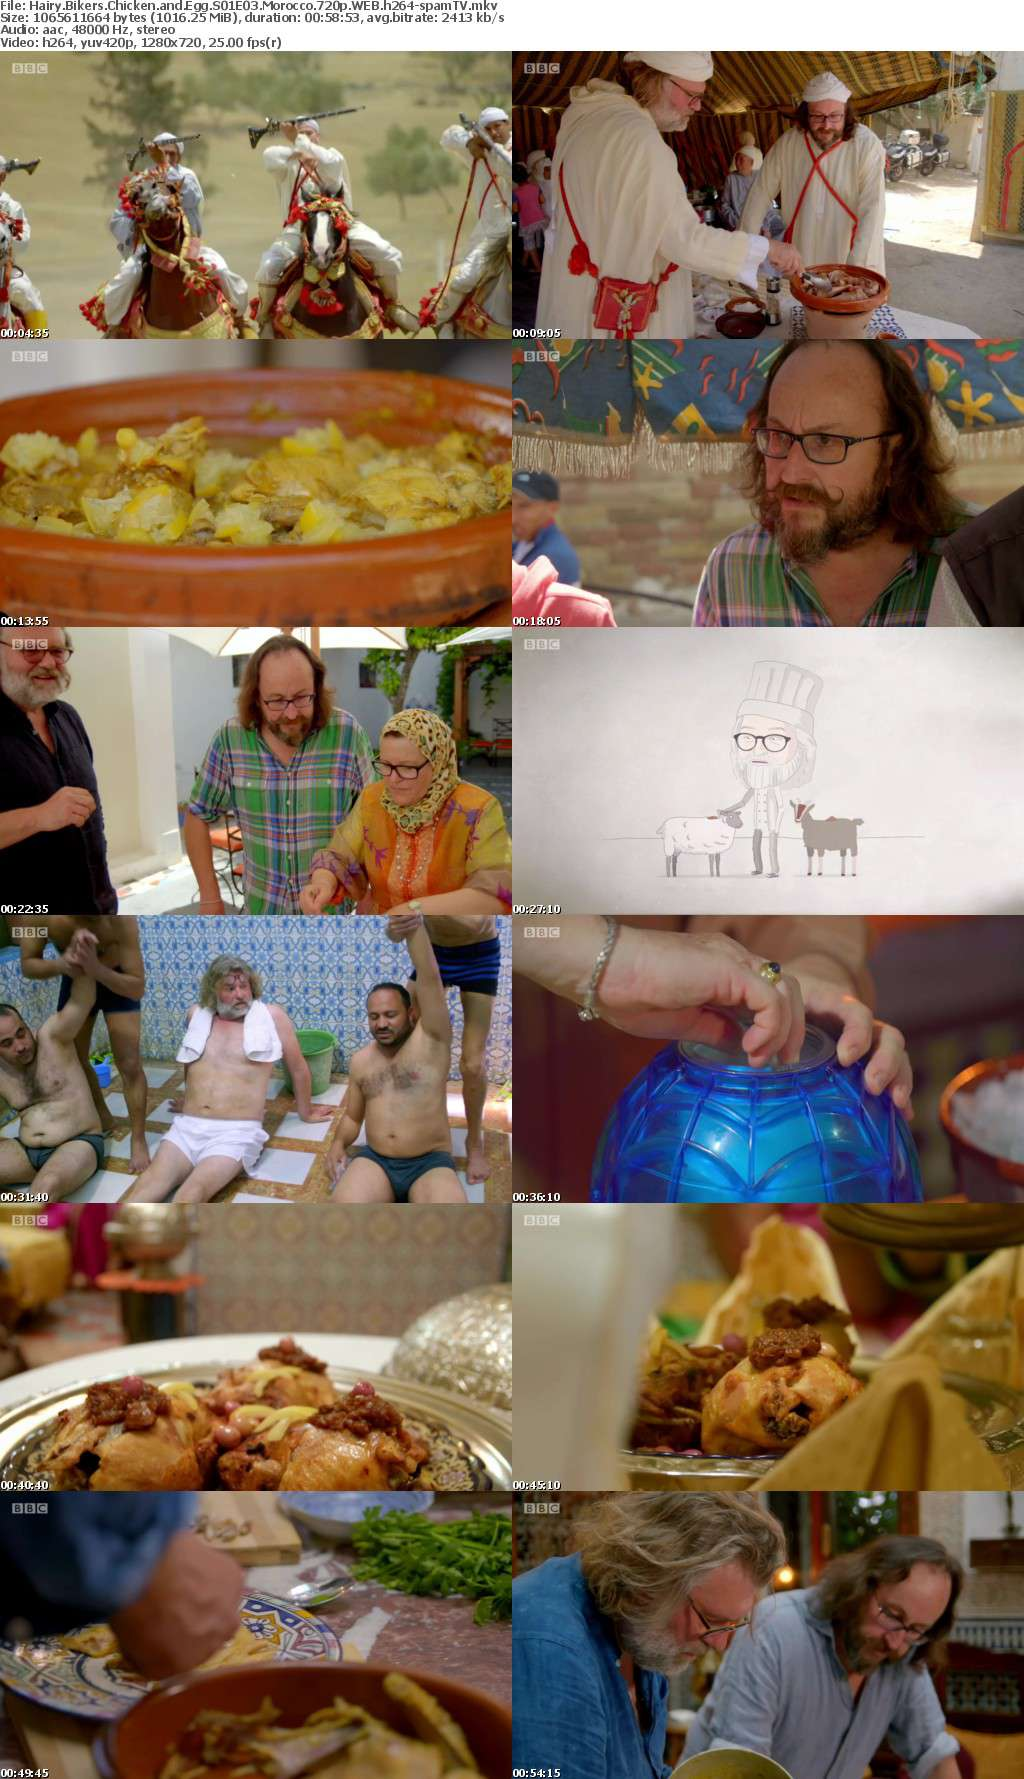 Hairy Bikers Chicken and Egg S01E03 Morocco 720p WEB h264-spamTV